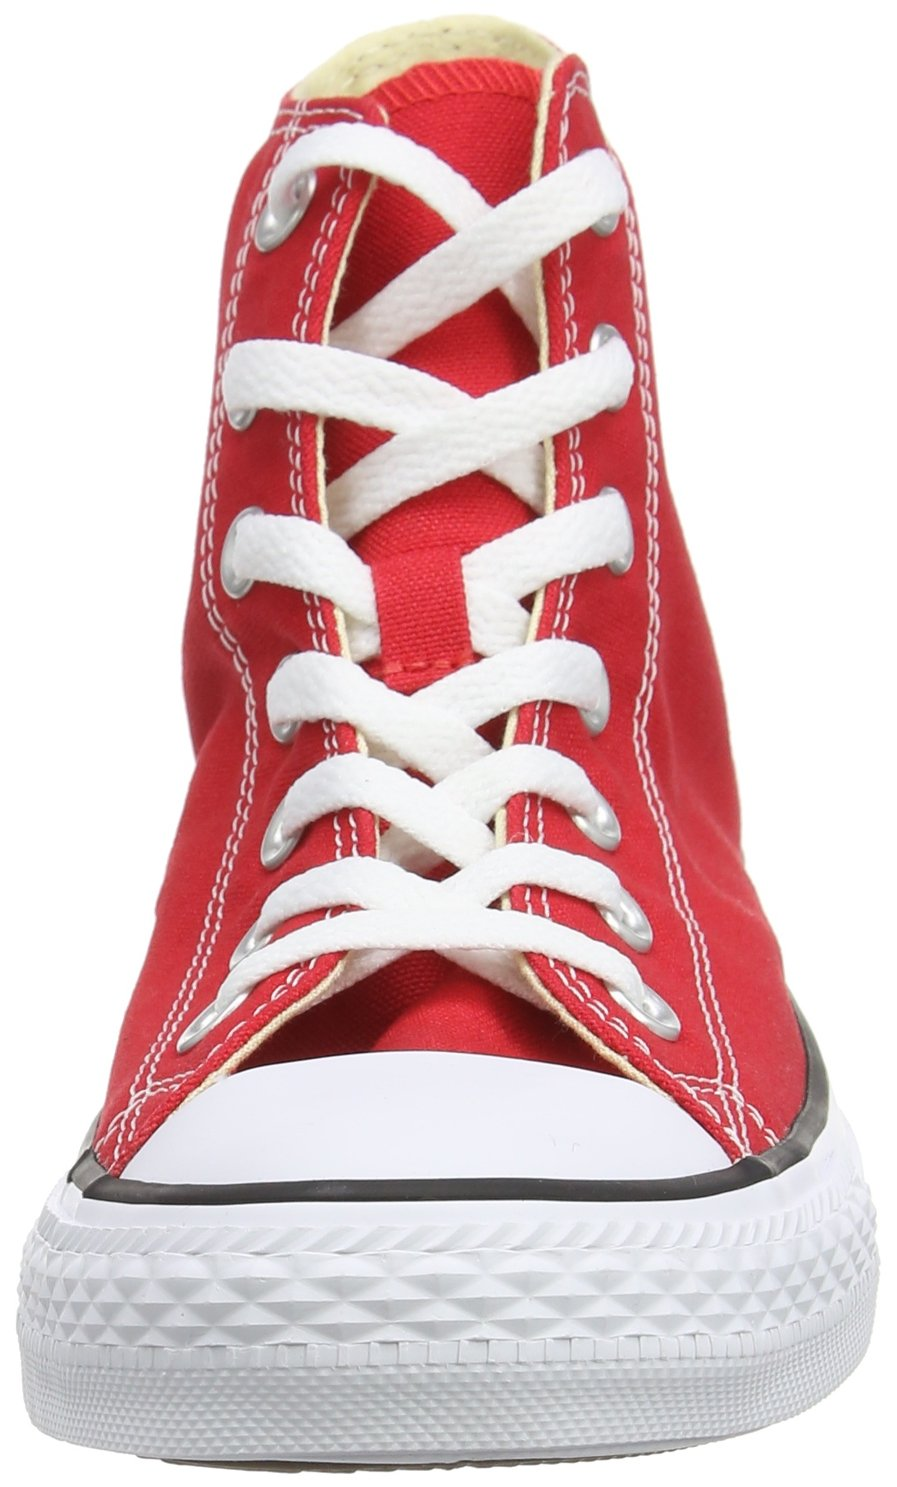 Converse Unisex Chuck Taylor All-Star High-Top Casual Sneakers in Classic Style and Color and Durable Canvas Uppers B002VSJ8KC 13 B(M) US Women / 11 D(M) US Men|Red